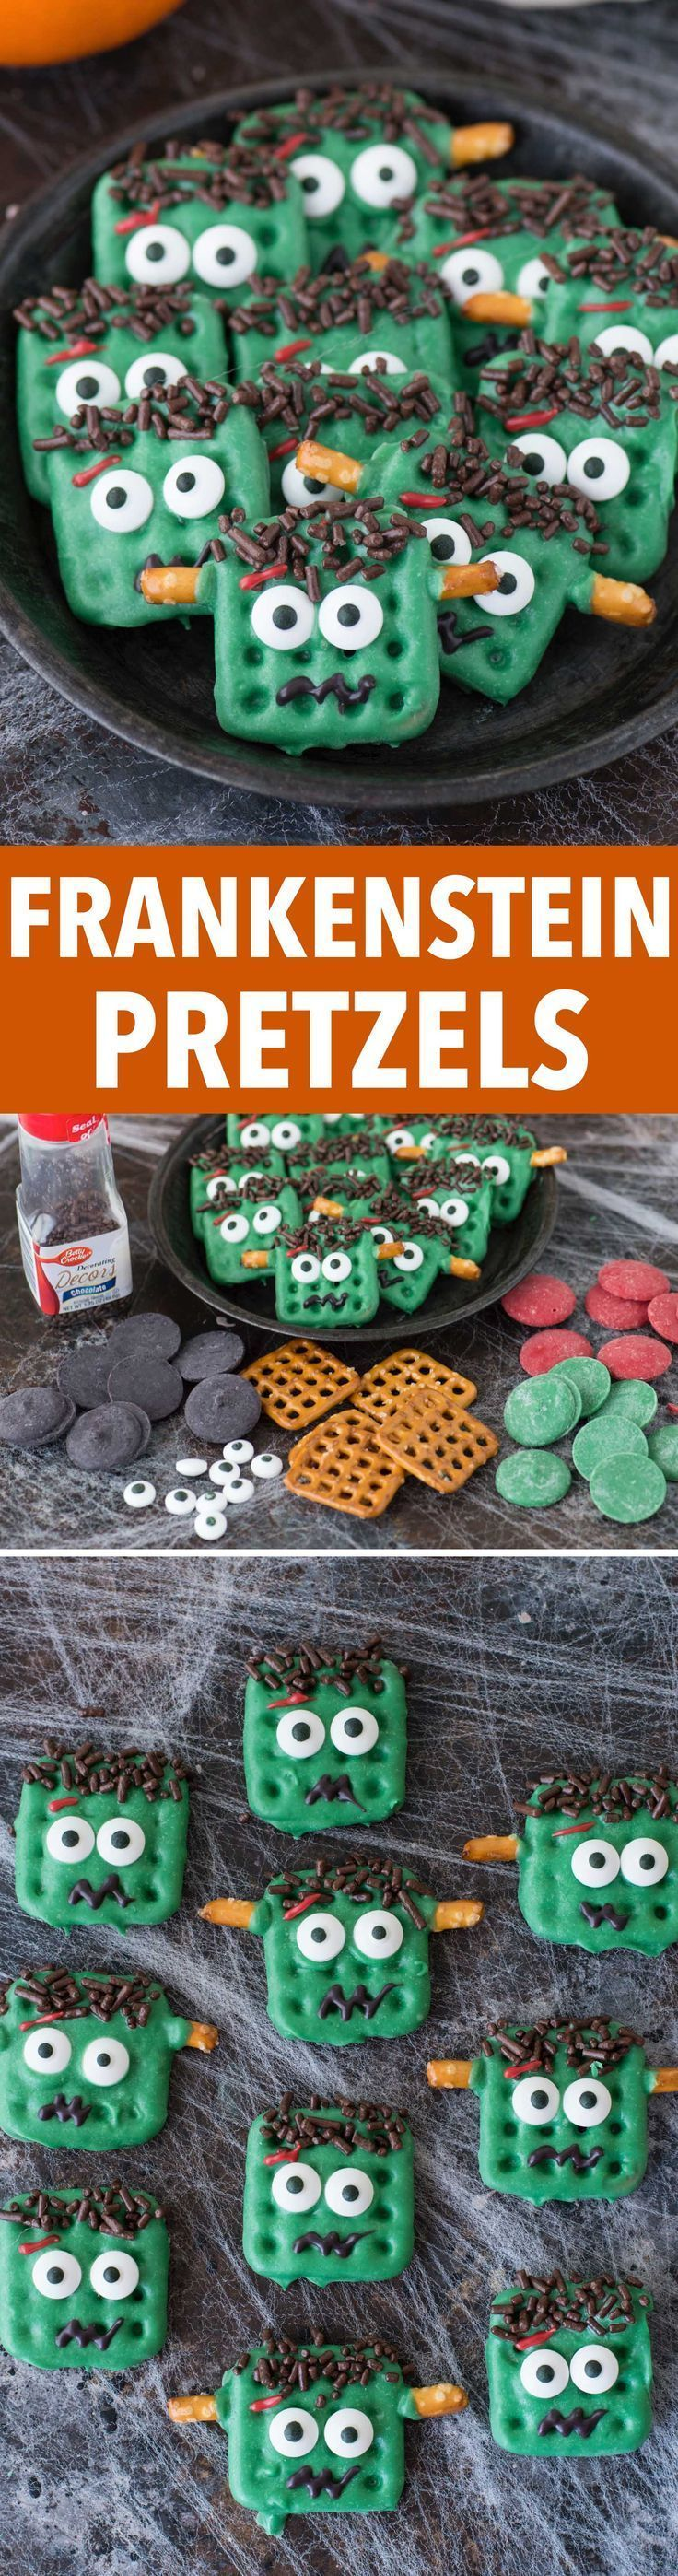 Easy halloween frankenstein pretzels using candy melts, pretzels, and a few simple ingredients! Kids can definitely help with this easy to make halloween treat!